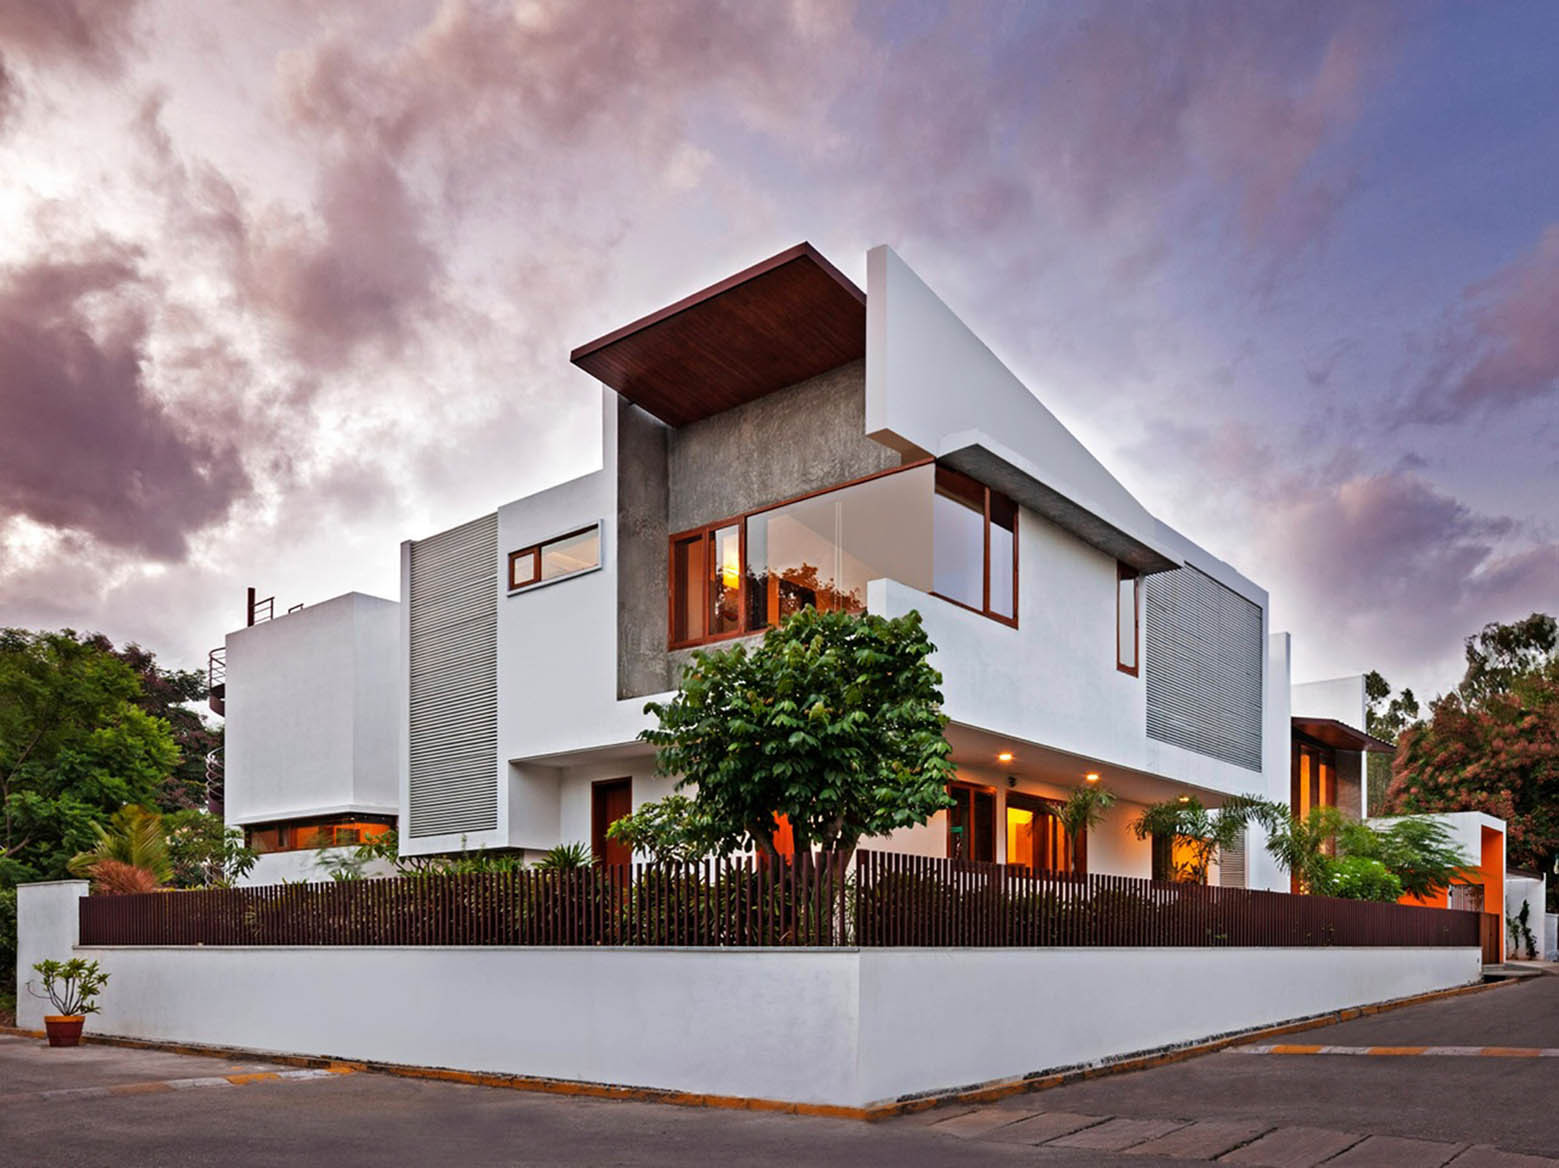 Architecture Houses India architecture houses india house ideas throughout decorating